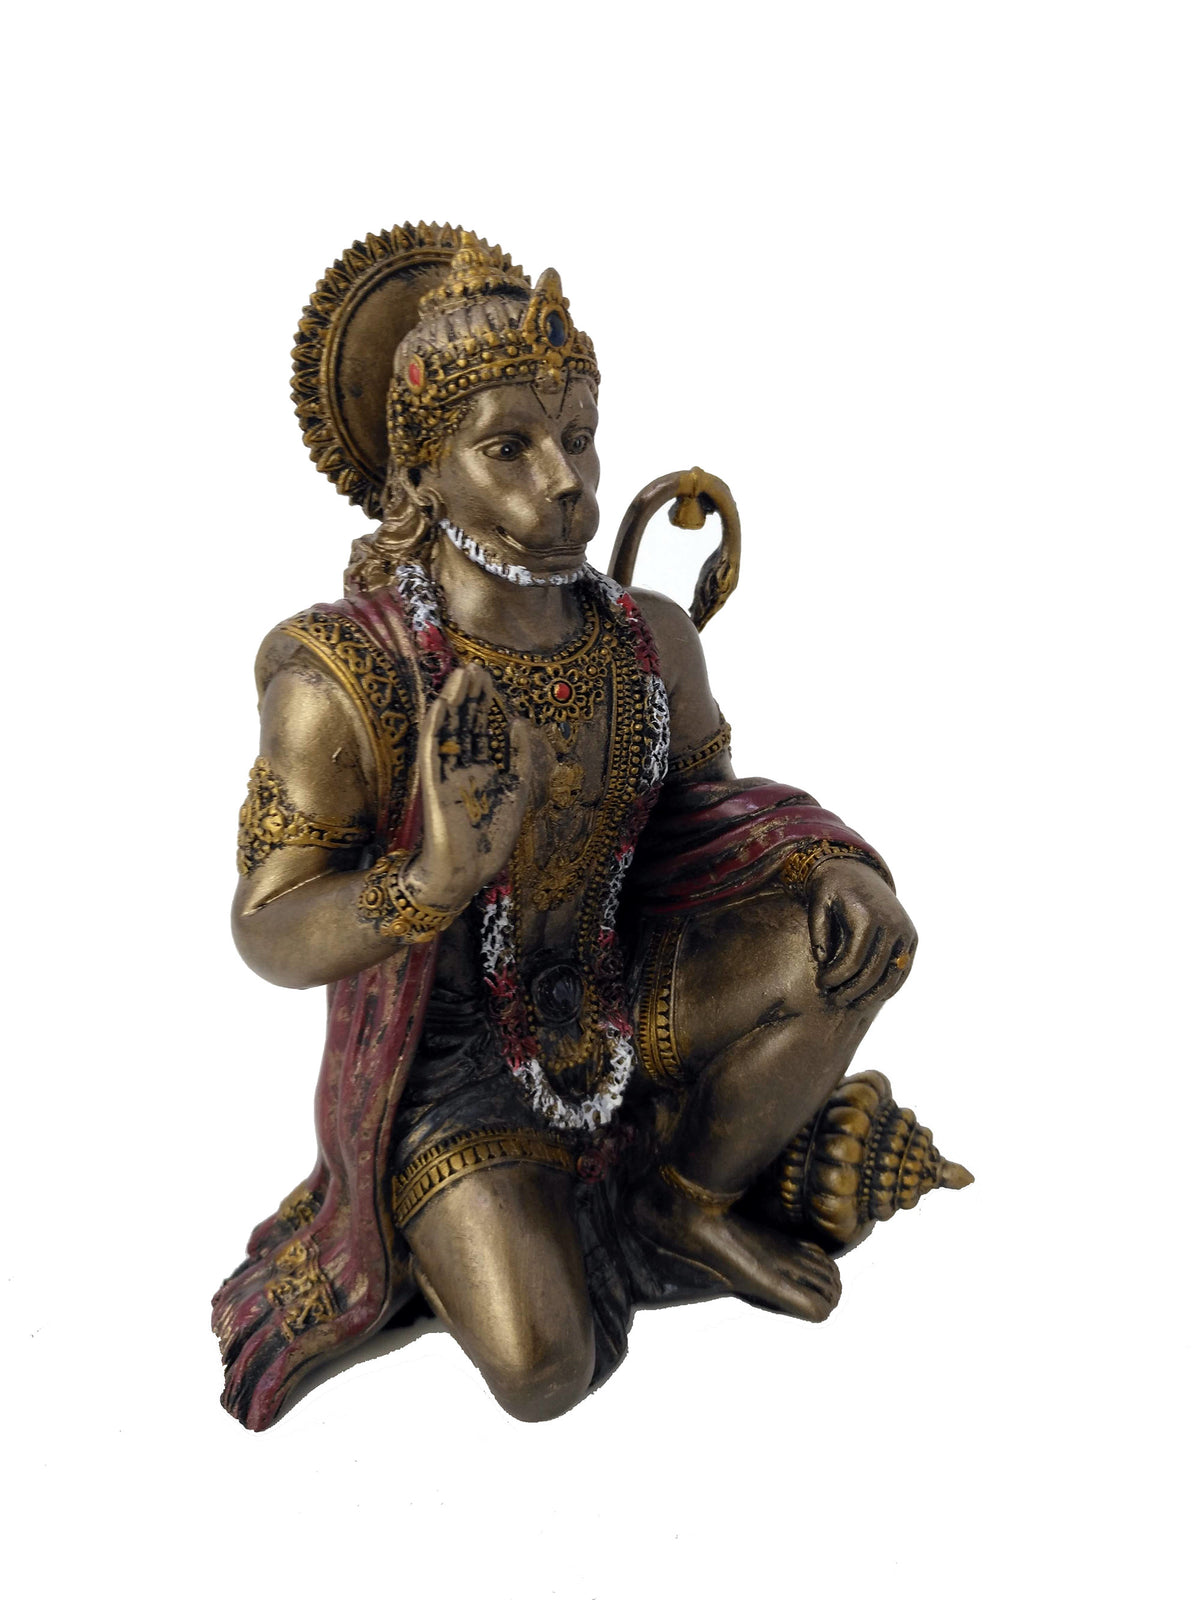 Lord Hanuman Kneeling Statue - God of Strength, Knowledge and Bhakti